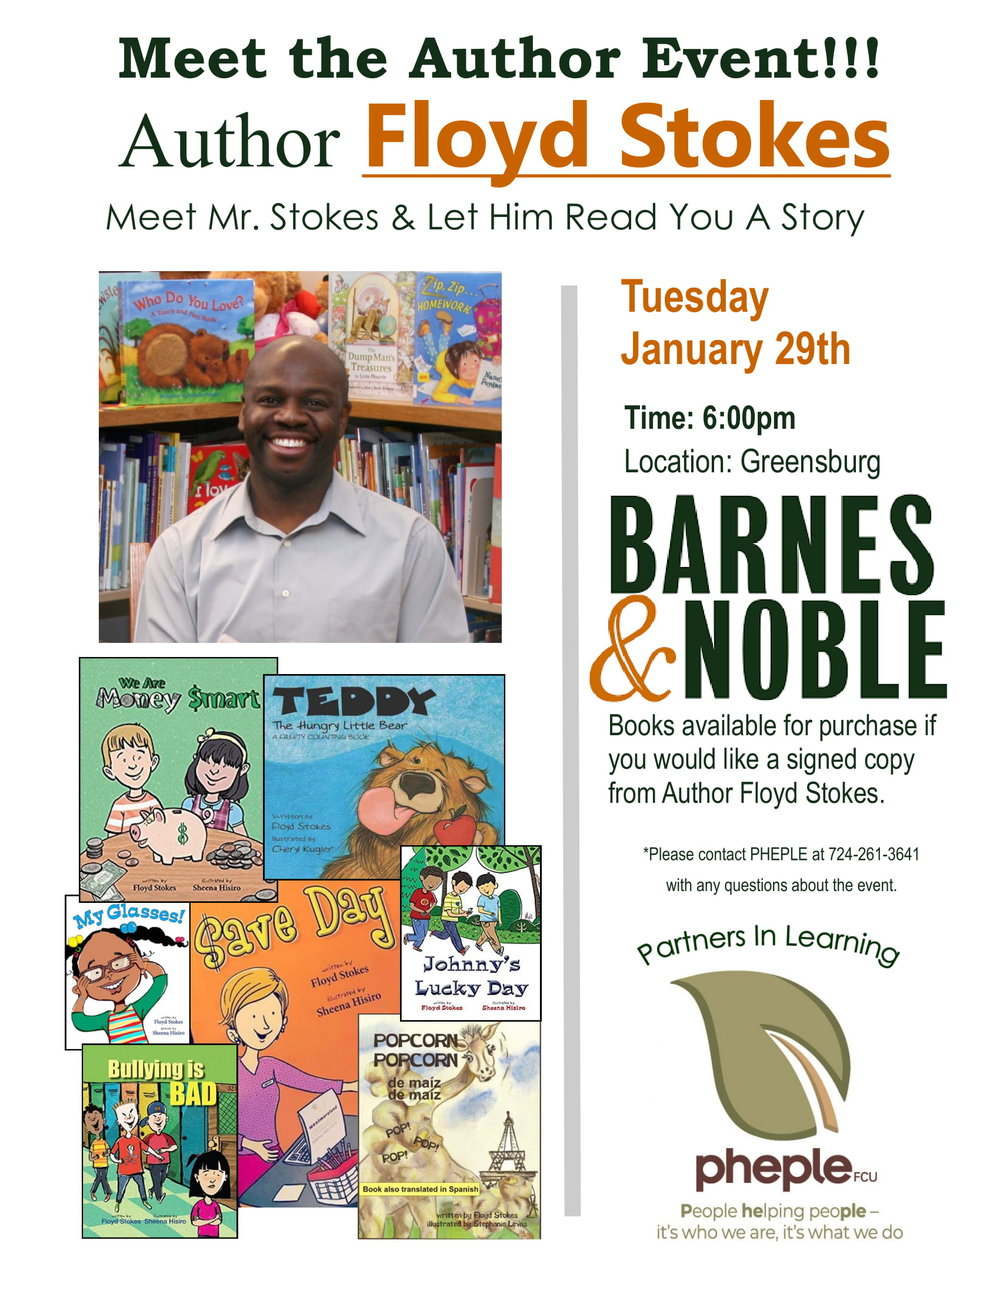 Meet Author Floyd Stokes at Barnes and Noble